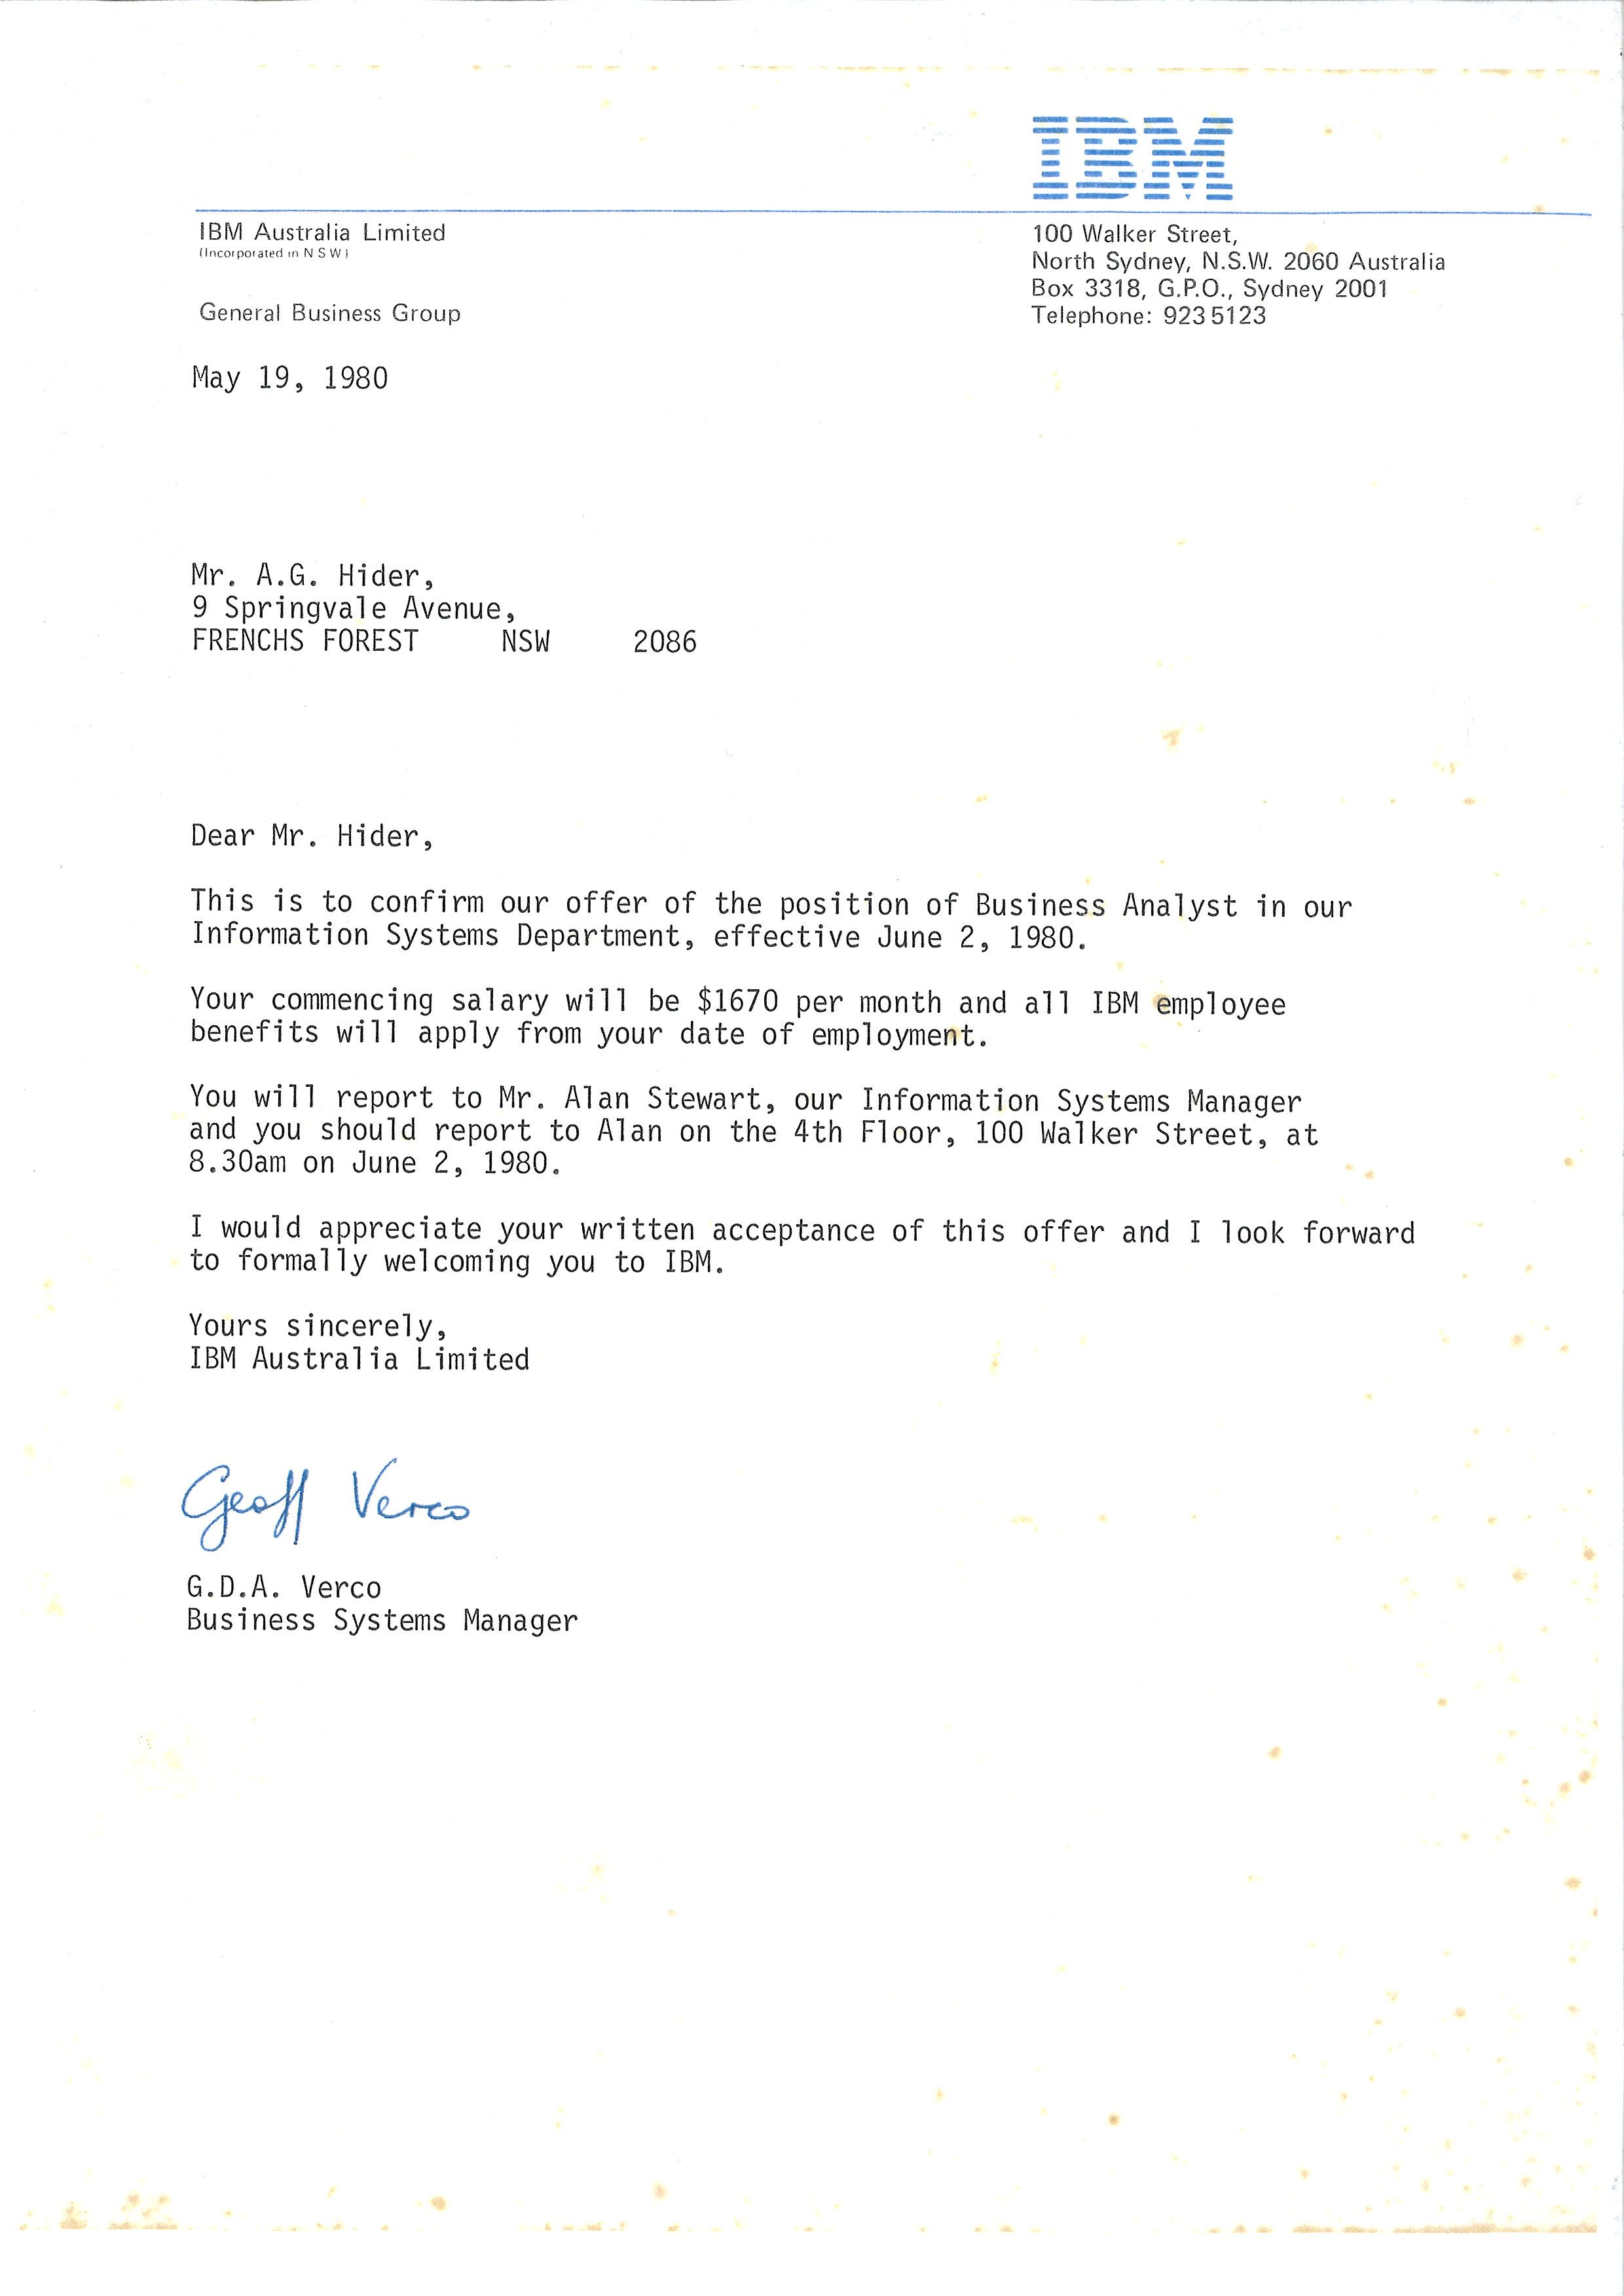 ibm appointment letter the profit doctor appointment letter ibm appointment letter the profit doctor appointment letter